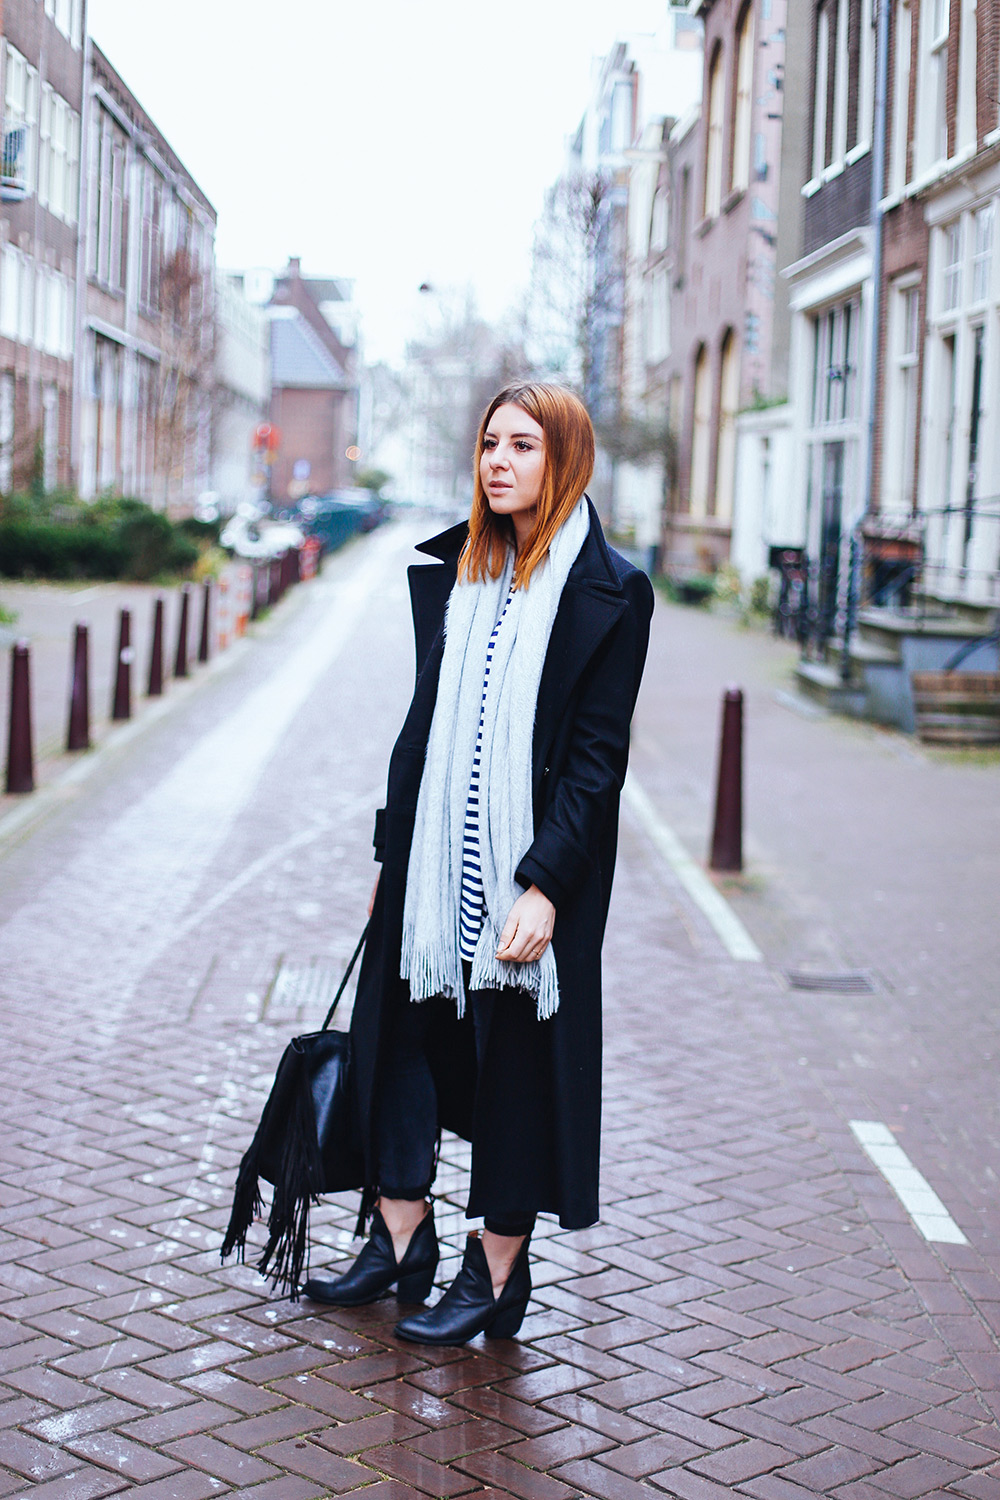 who is mocca, modeblog, fashionblog, influencer, amsterdam streetstyle, oversize mantel kombinieren, cut out boots, winter outfit, whoismocca.com